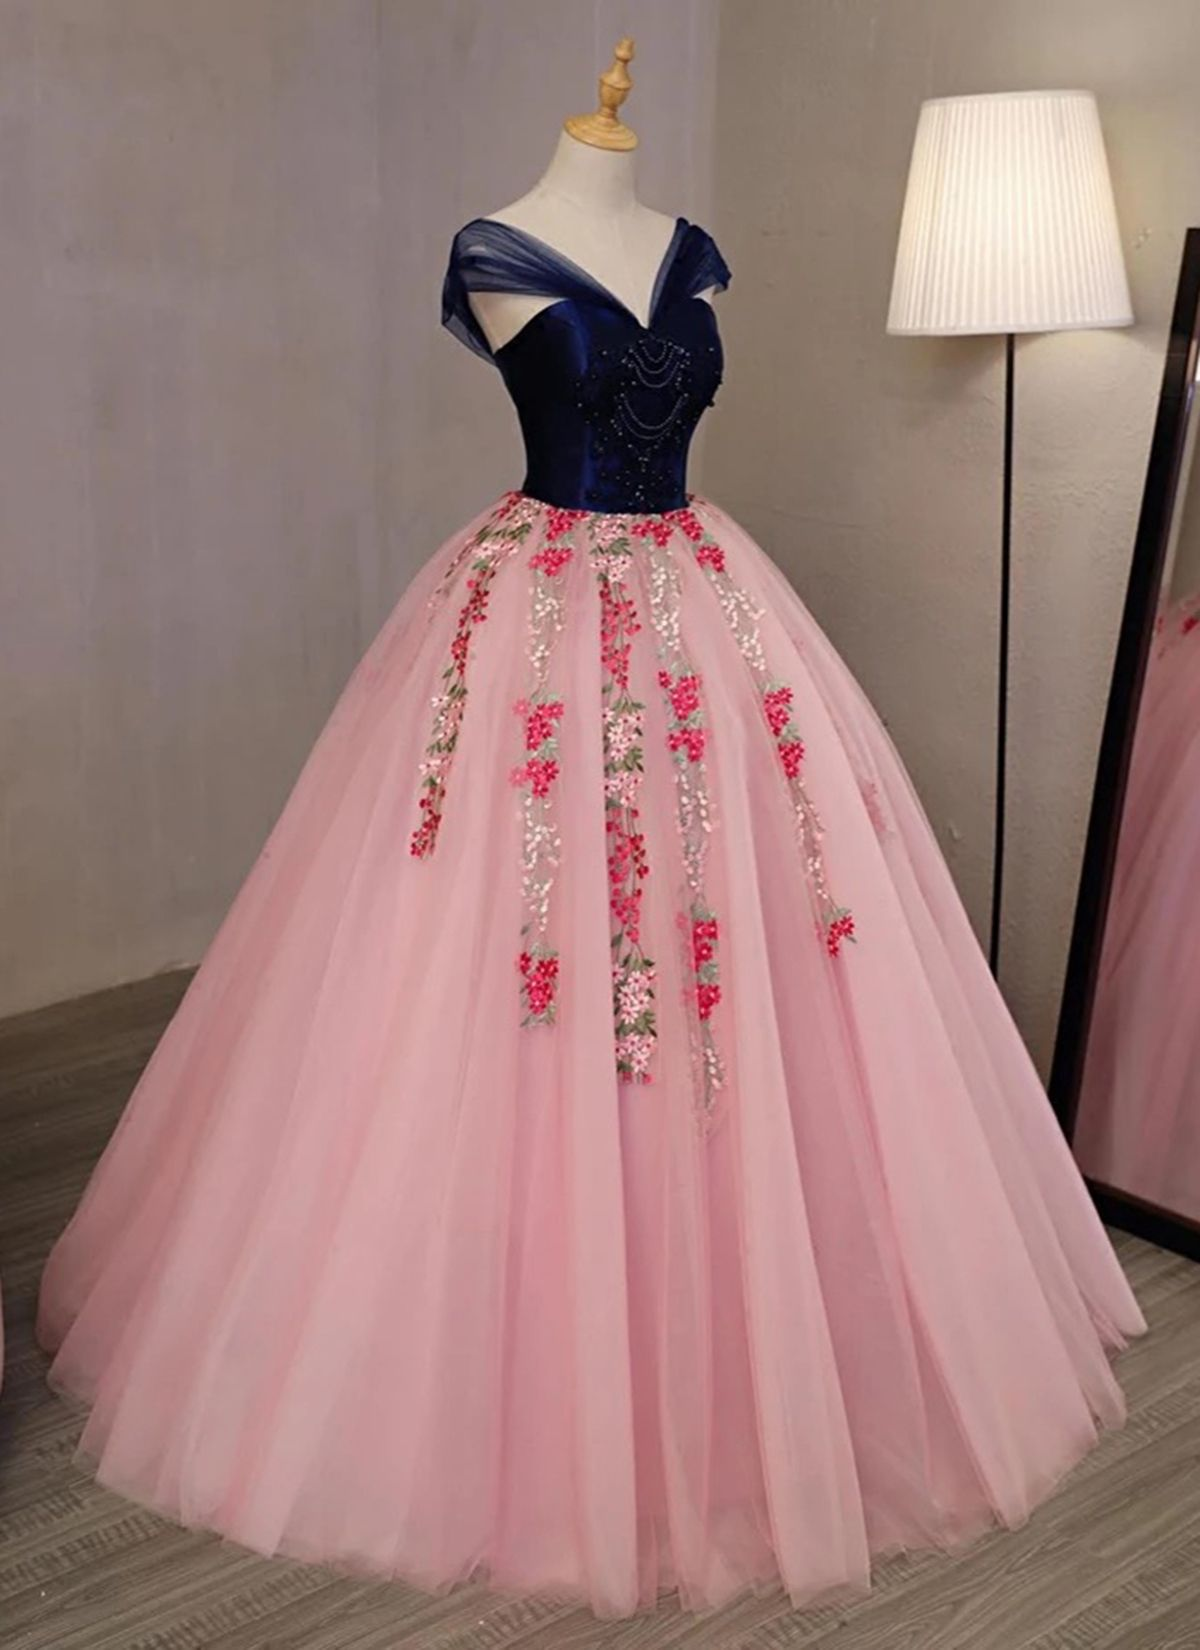 Strapless long sleeves evening dressoff the shoulder prom gown